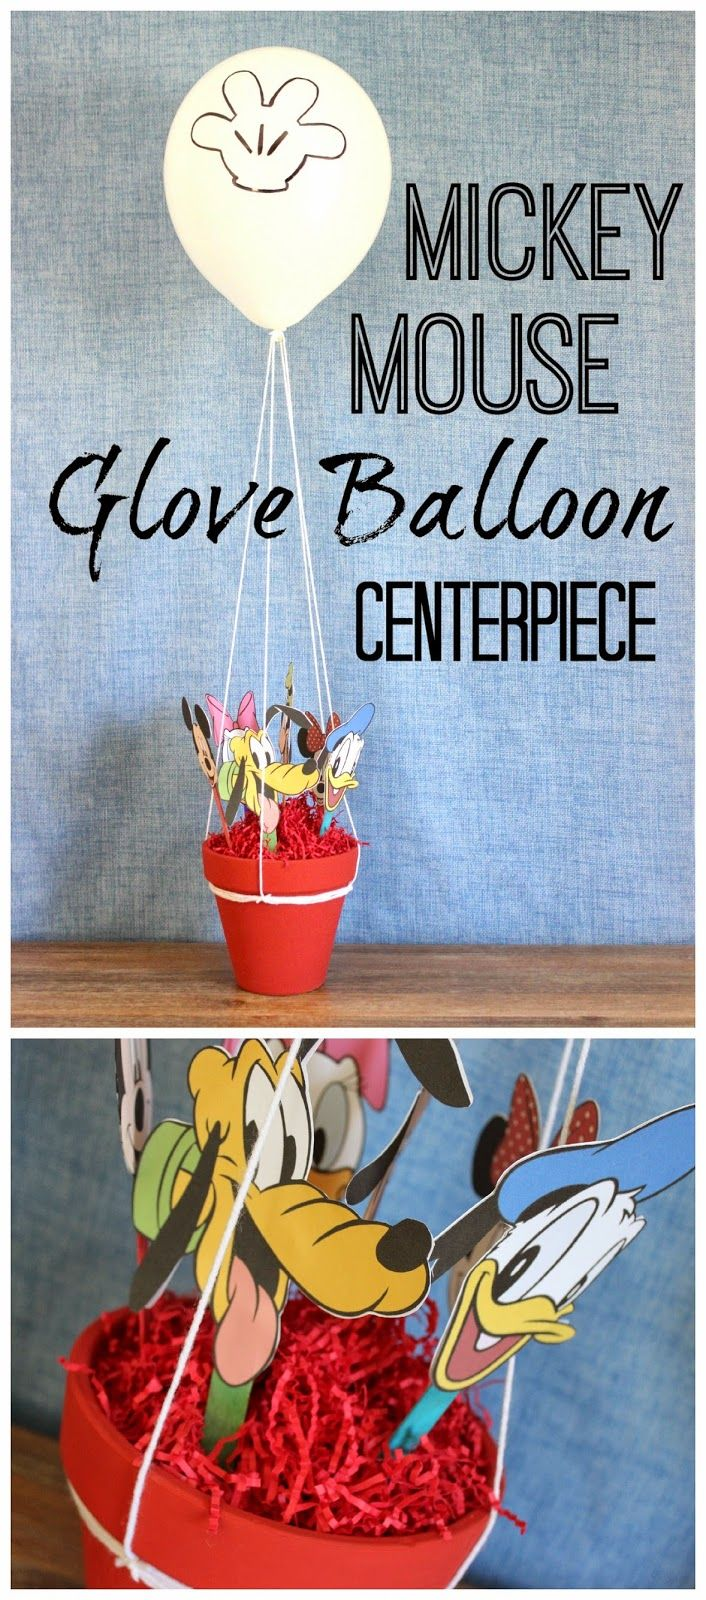 Mickey Mouse Clubhouse Glove Balloon Centerpiece | Disney Party | Mickey Mouse Party |